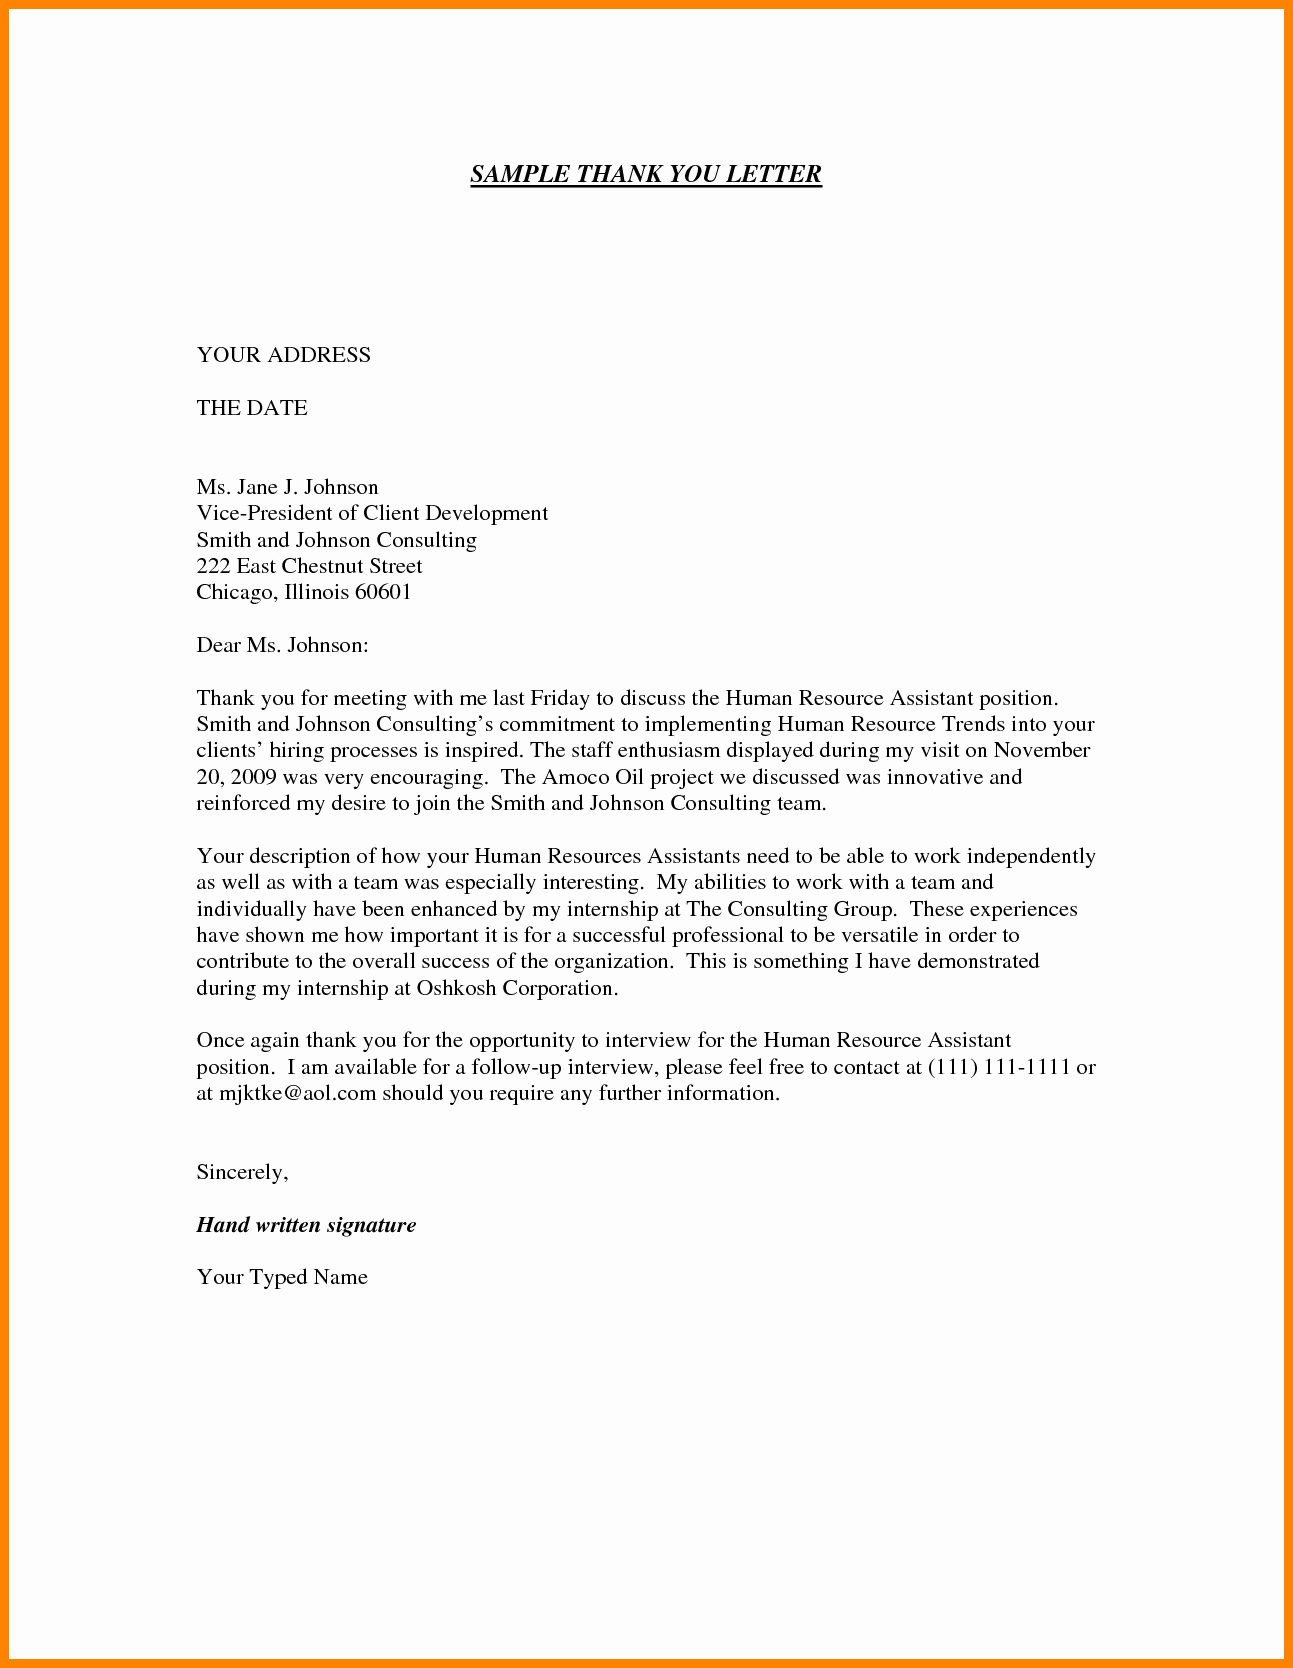 Medical assistant Cover Letter Templates Inspirational 5 Cover Letter for Medical assistant